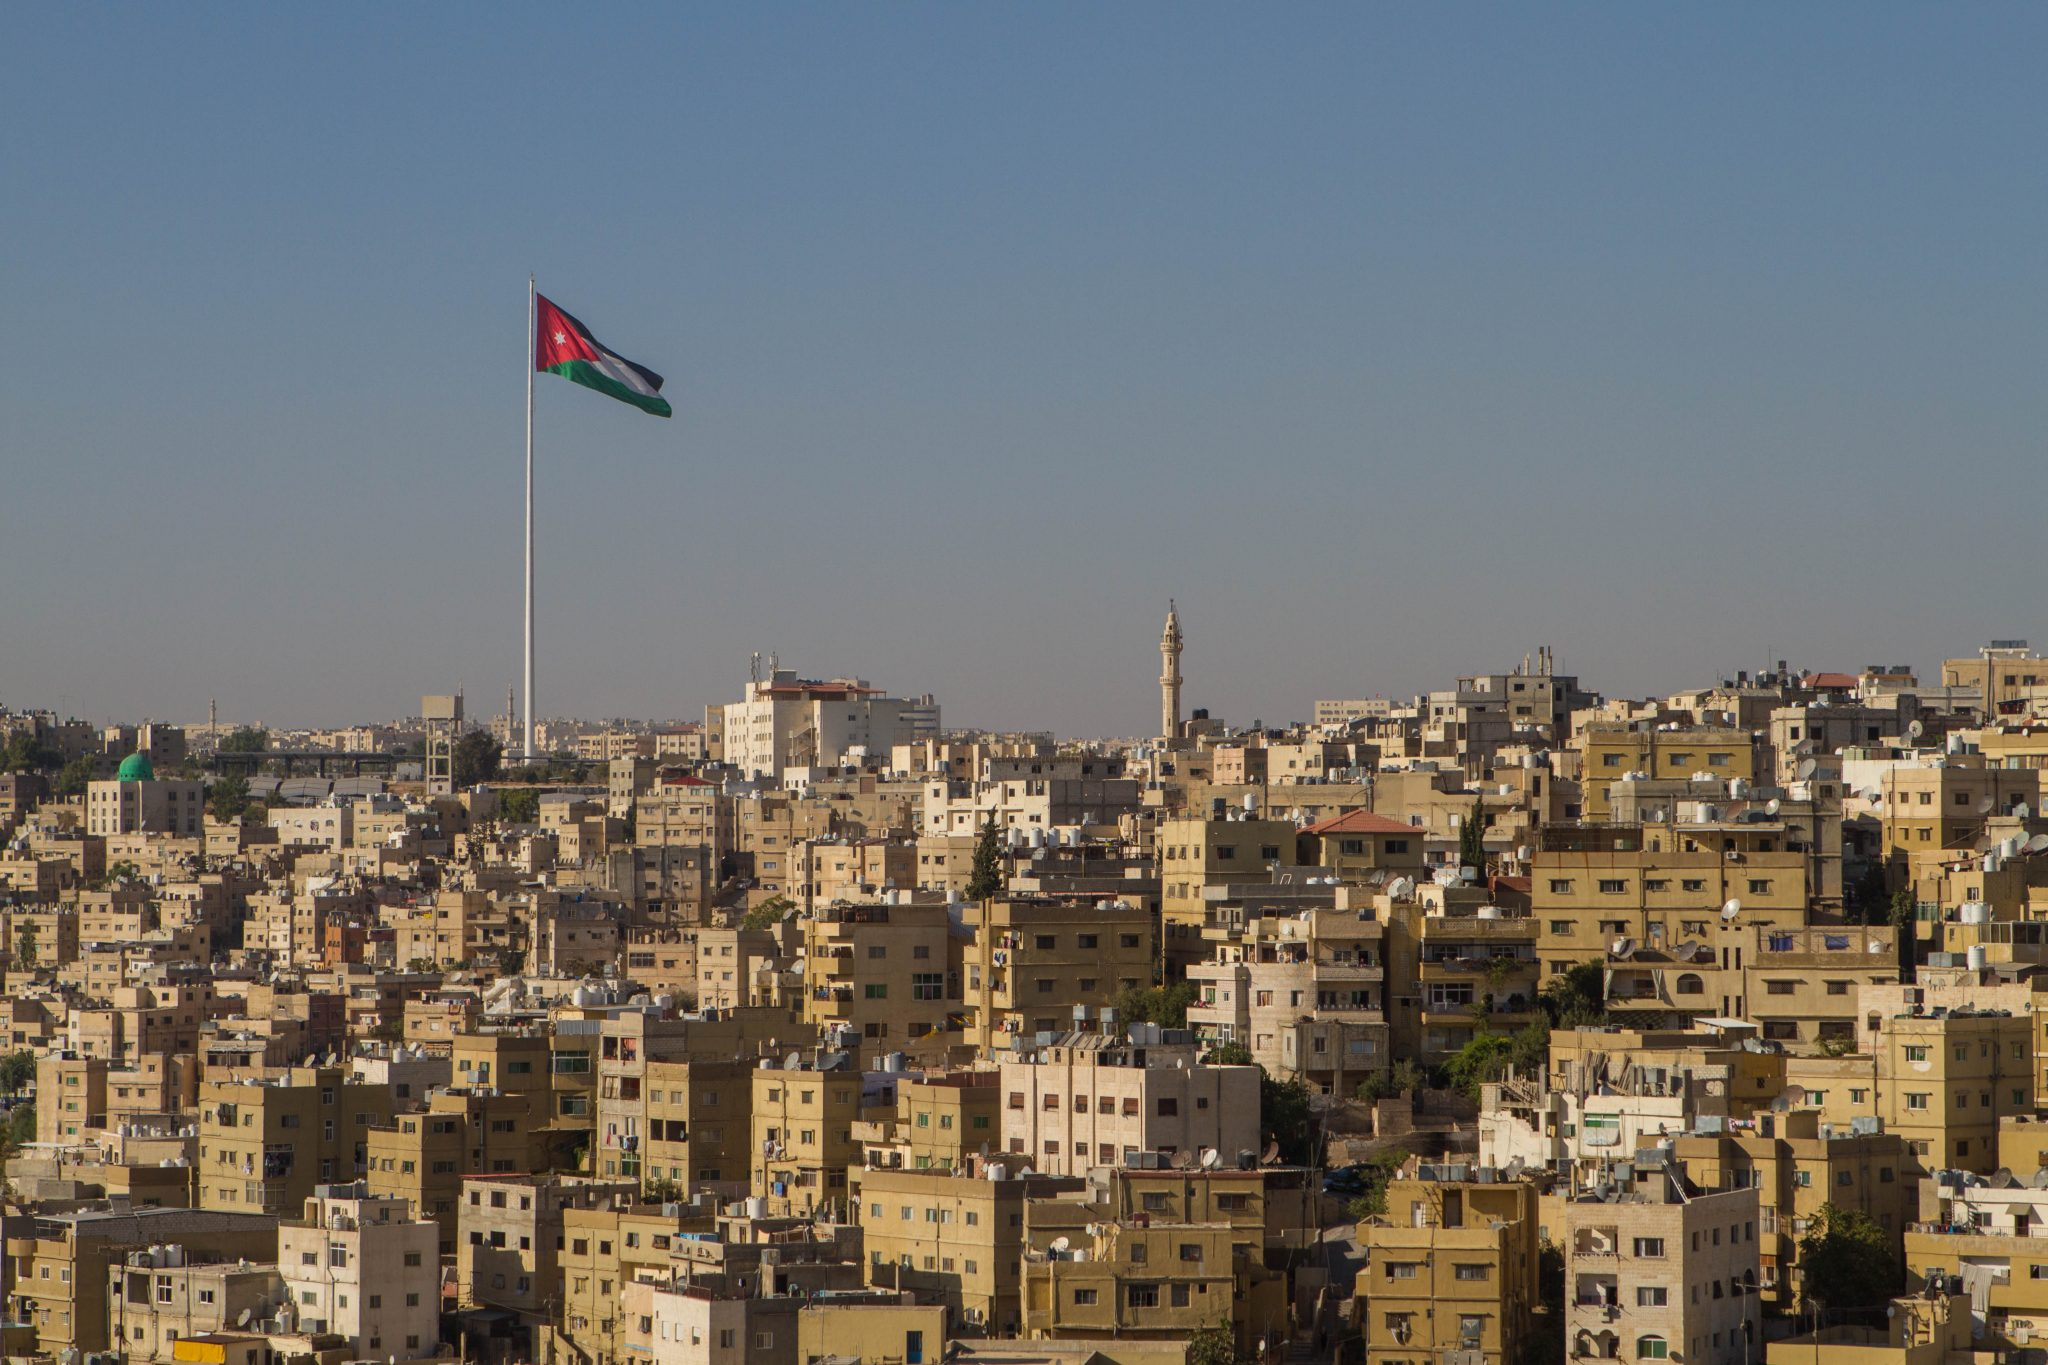 Jordanian flag flying over Amman